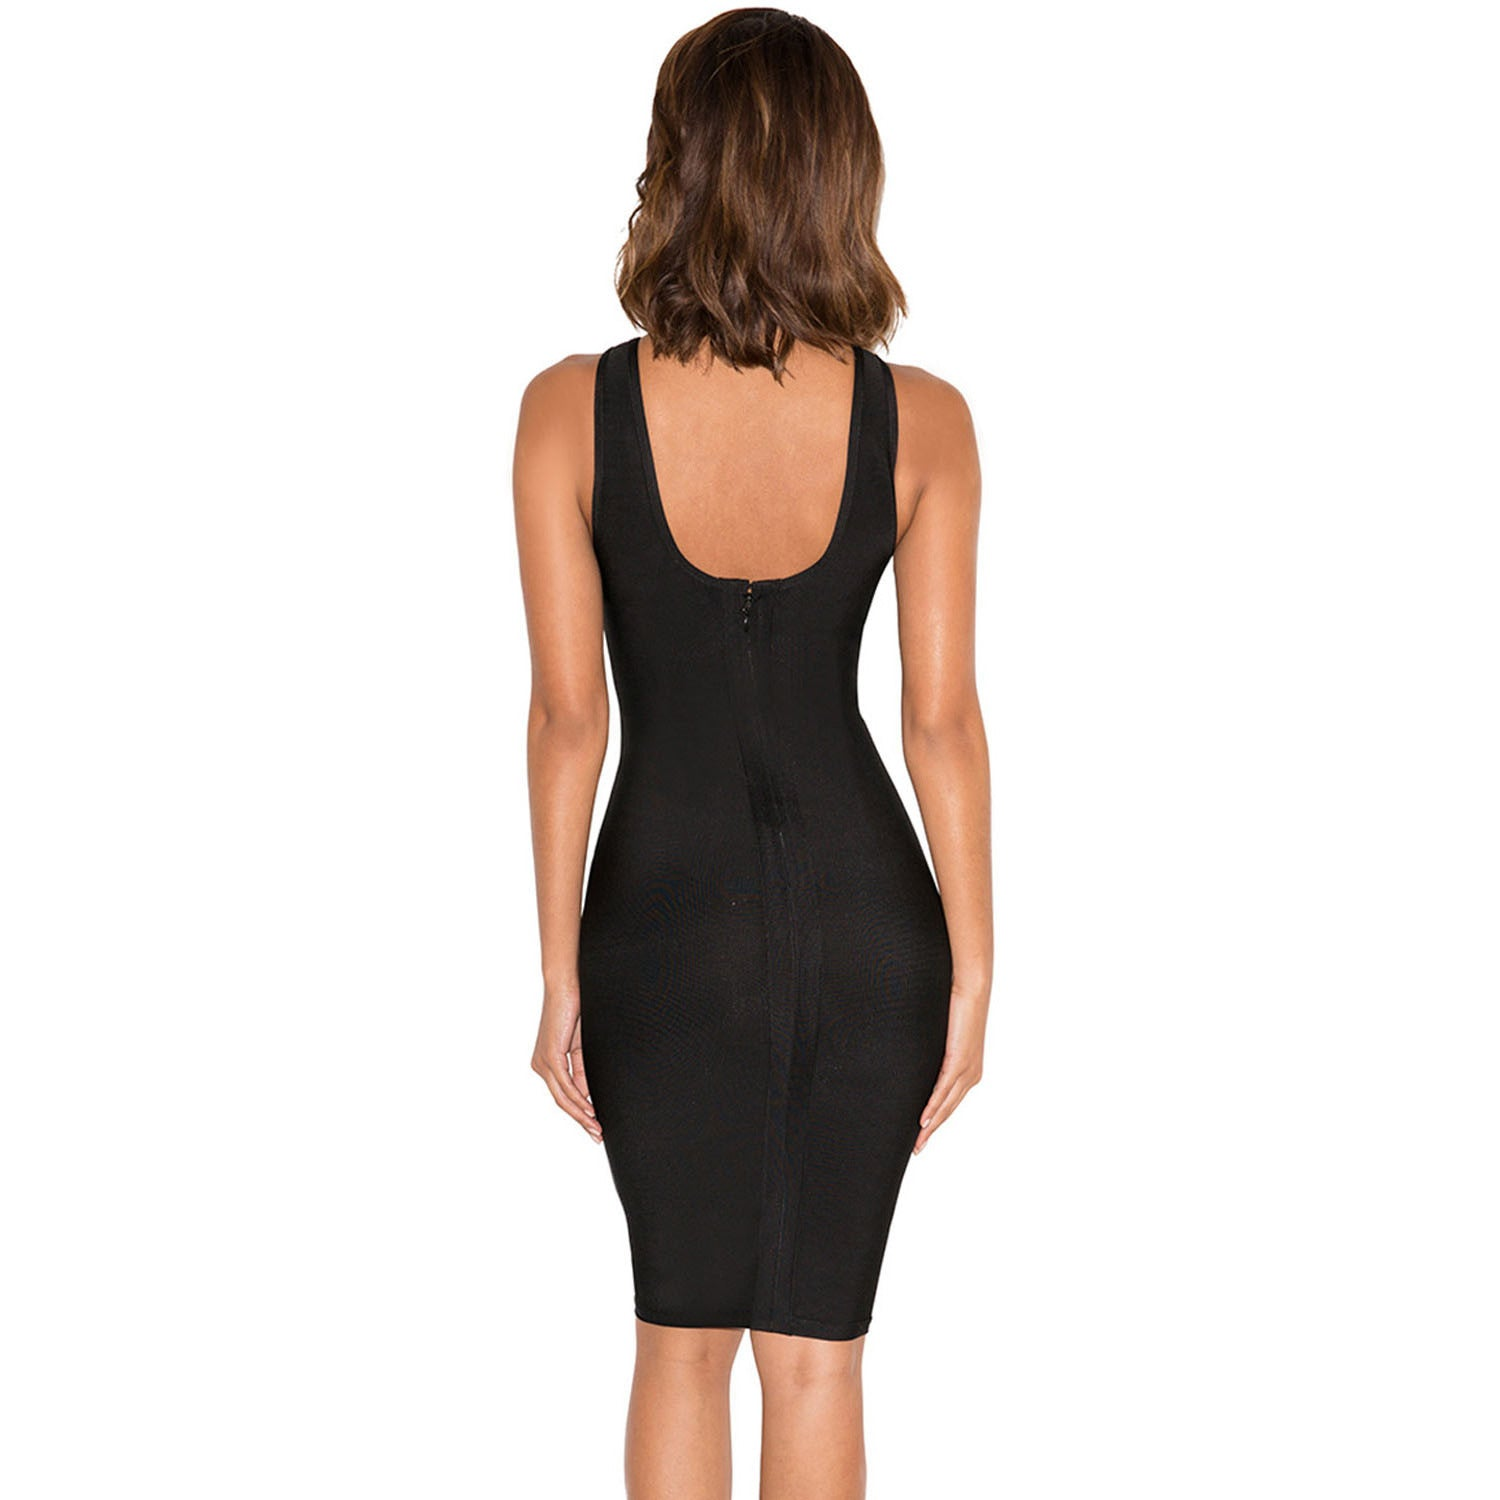 Sexy Deep V Neck Lace Up Bandage Dress LAVELIQ SALE - LAVELIQ - 2